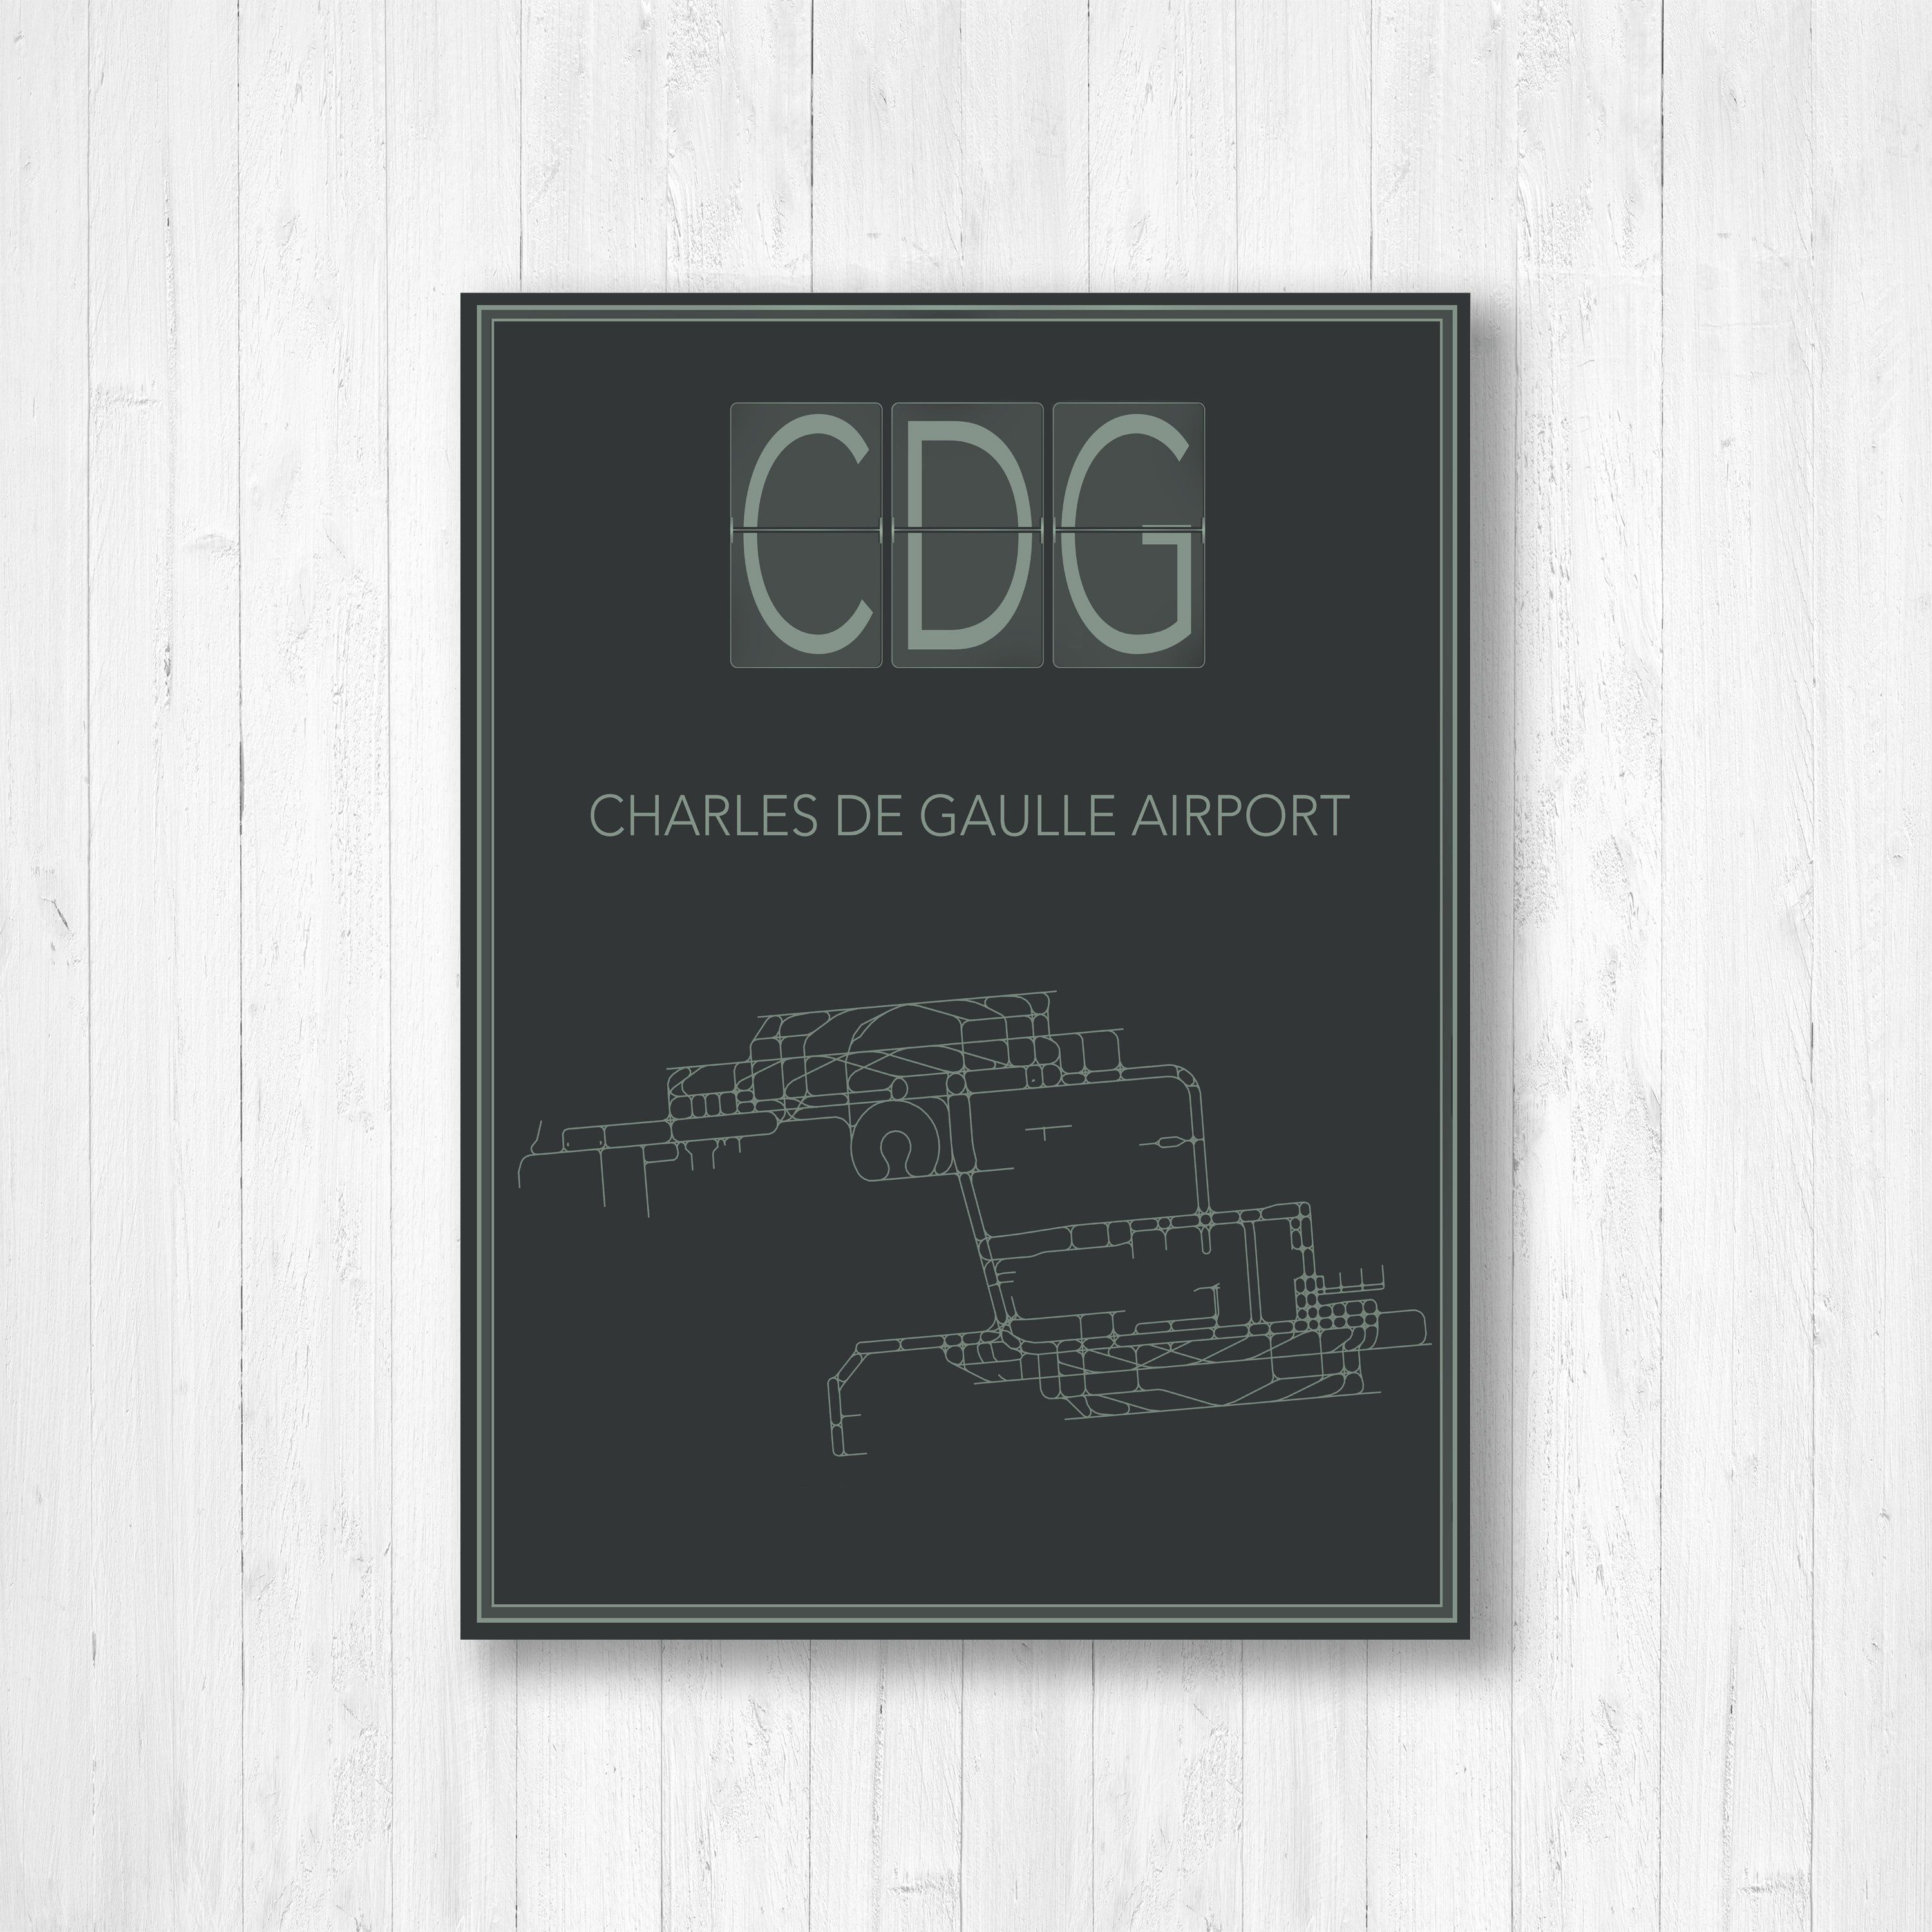 Paris Charles De Gaulle Airport International Airport Map Etsy Airport Map Charles De Gaulle Airport Map Wall Art